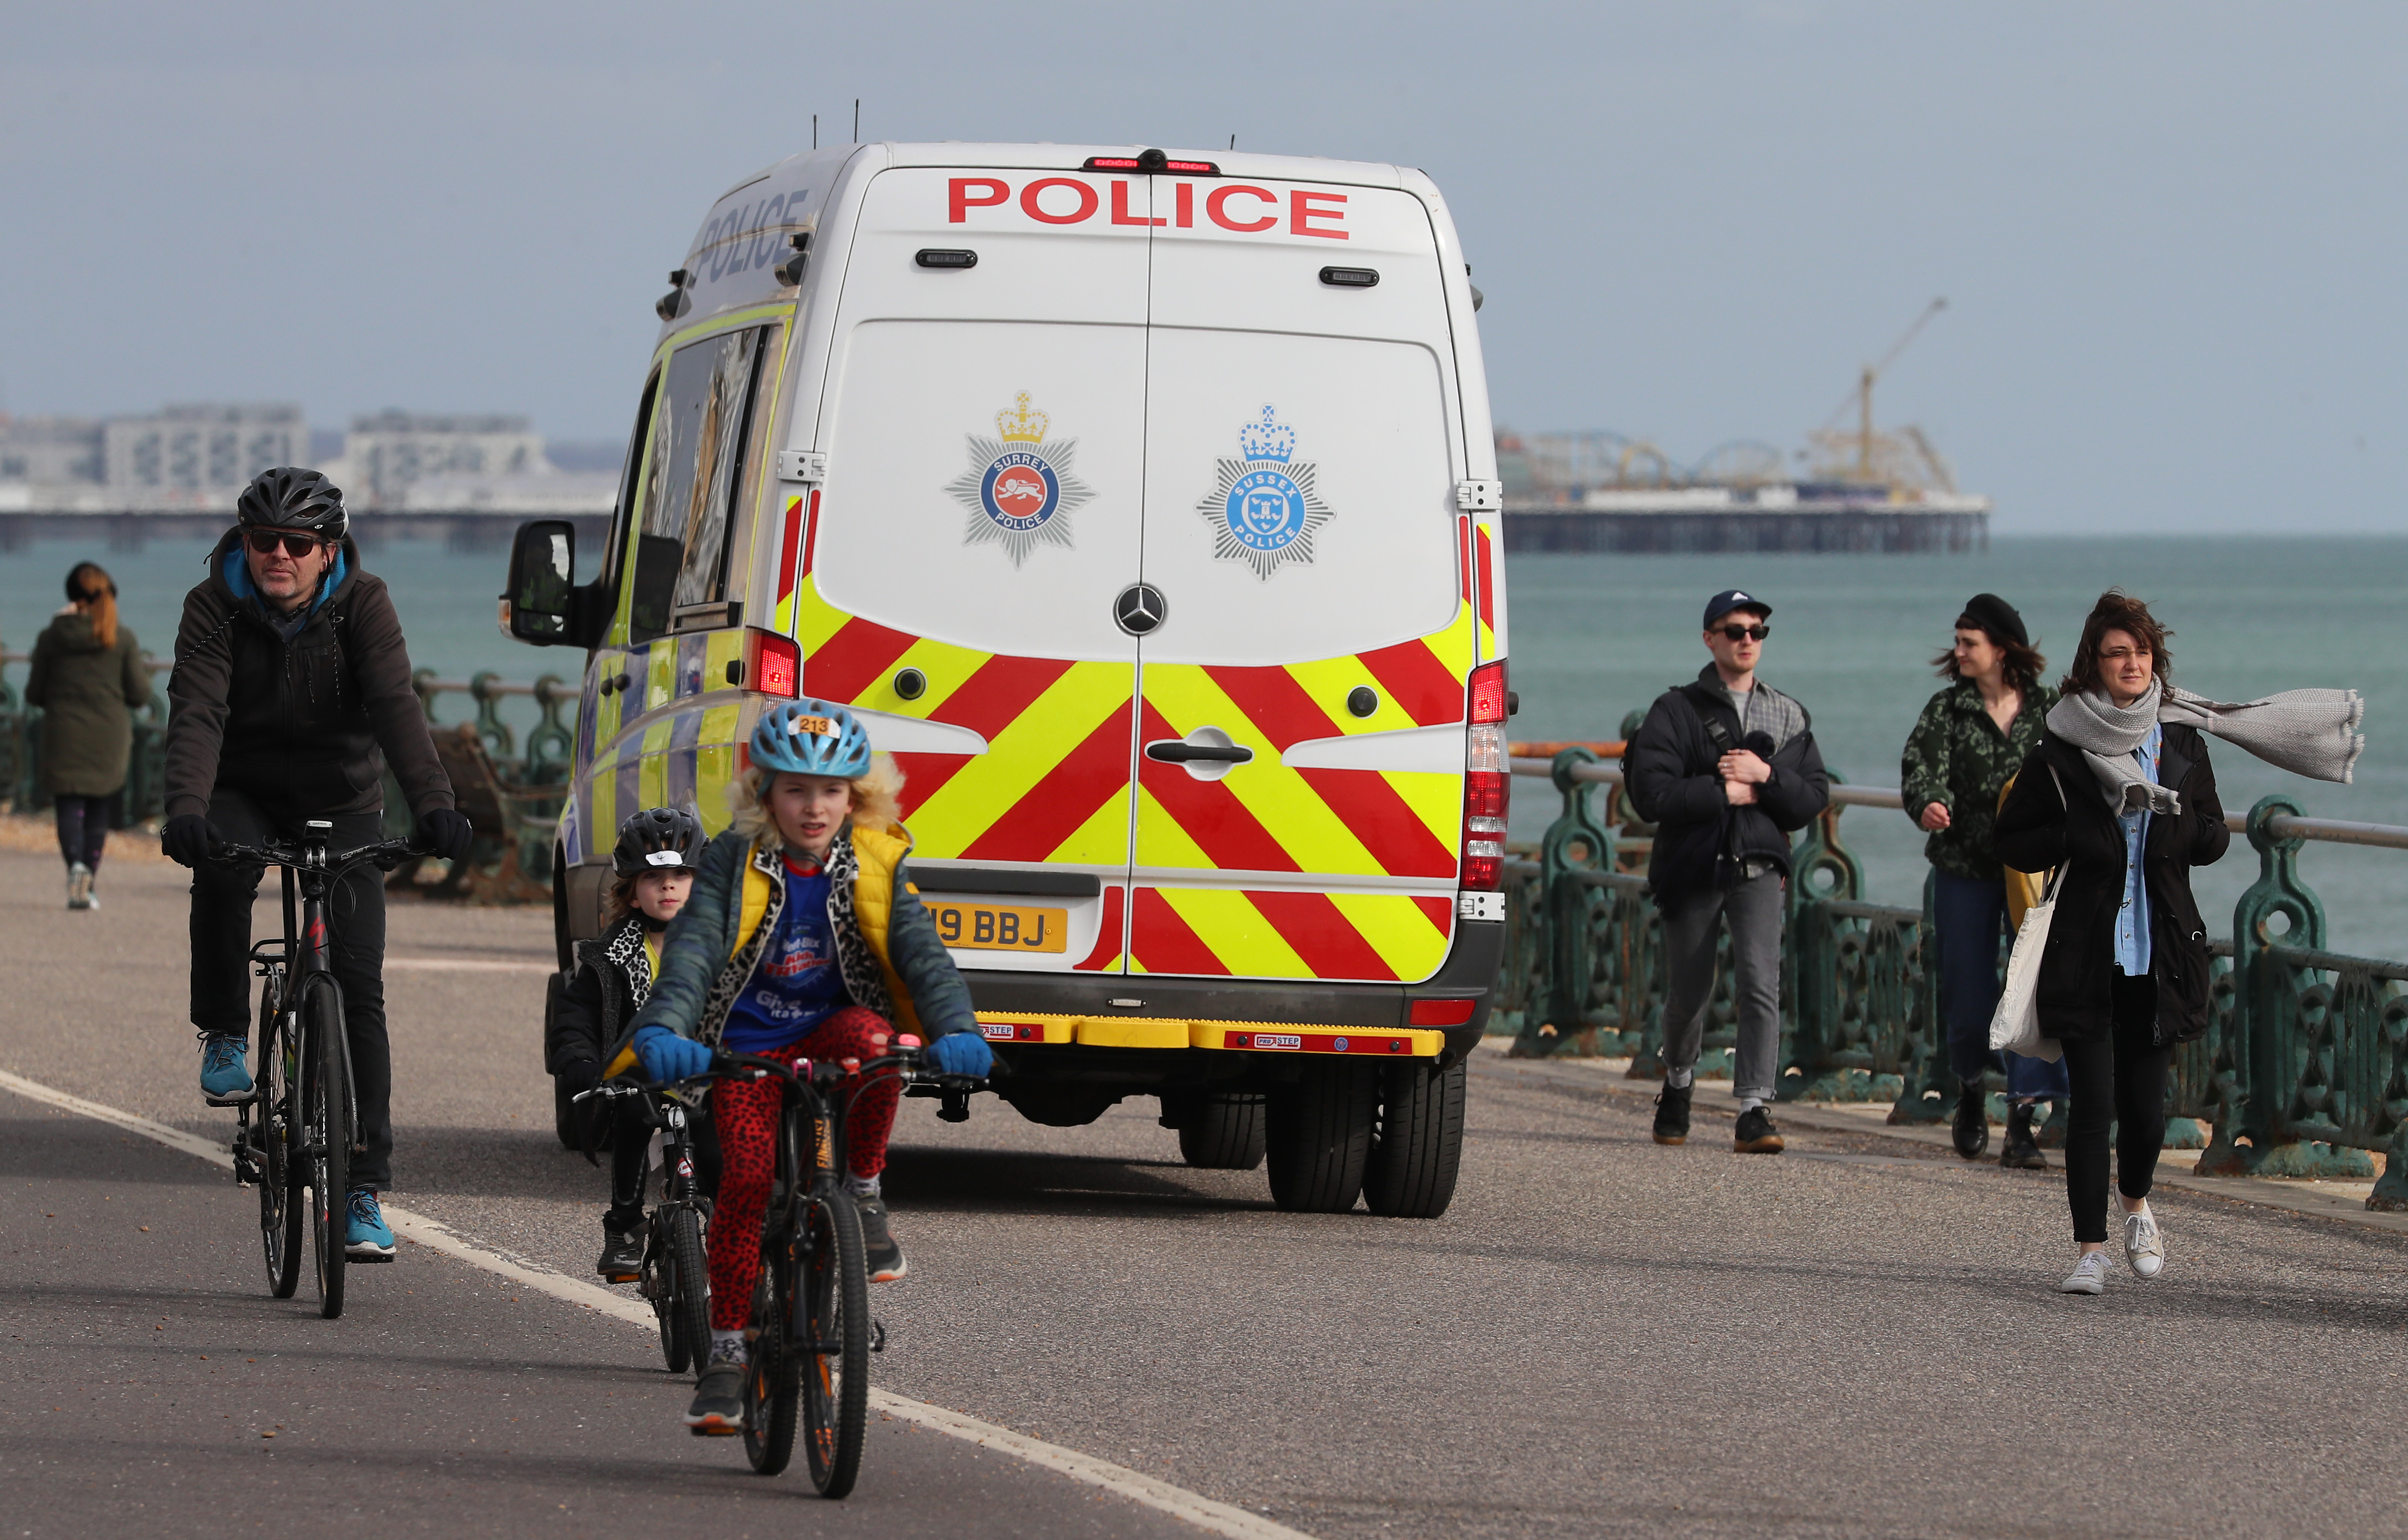 A Sussex Police van moves amongst people walking along the promenade in Brighton as the UK continues in lockdown to help curb the spread of the coronavirus.